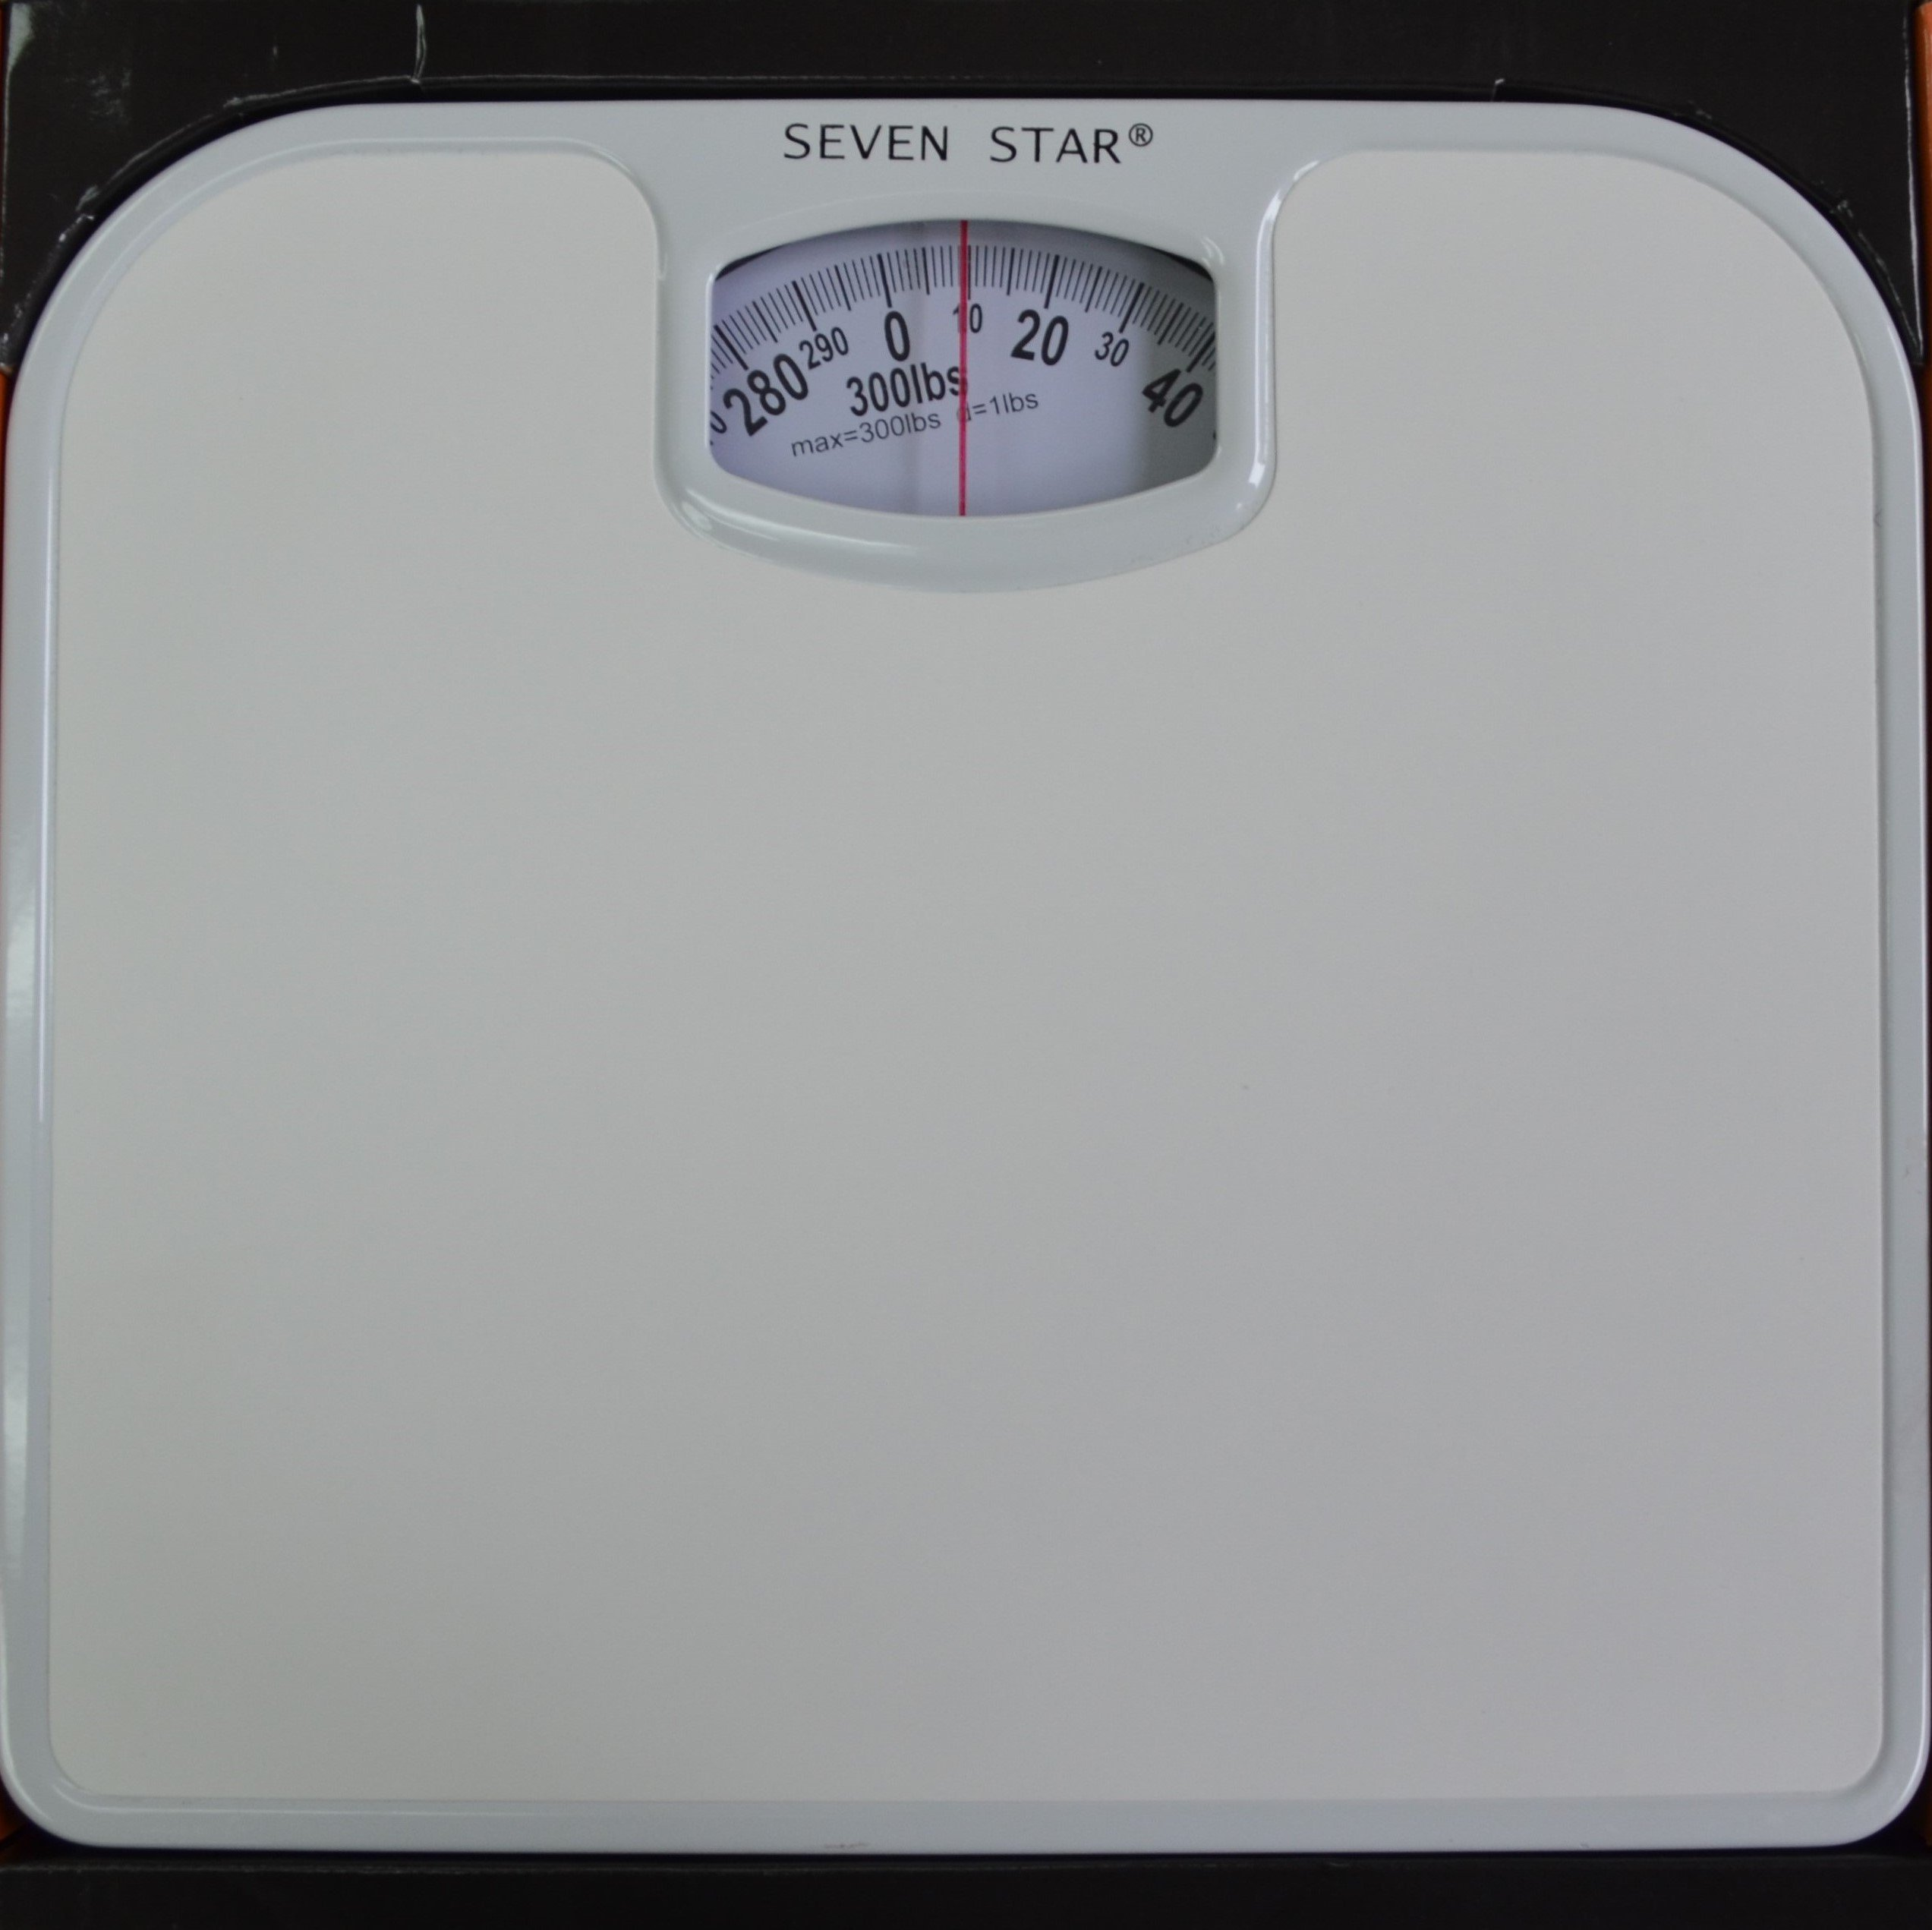 SevenStar Mechanical Bathroom Scale (White)